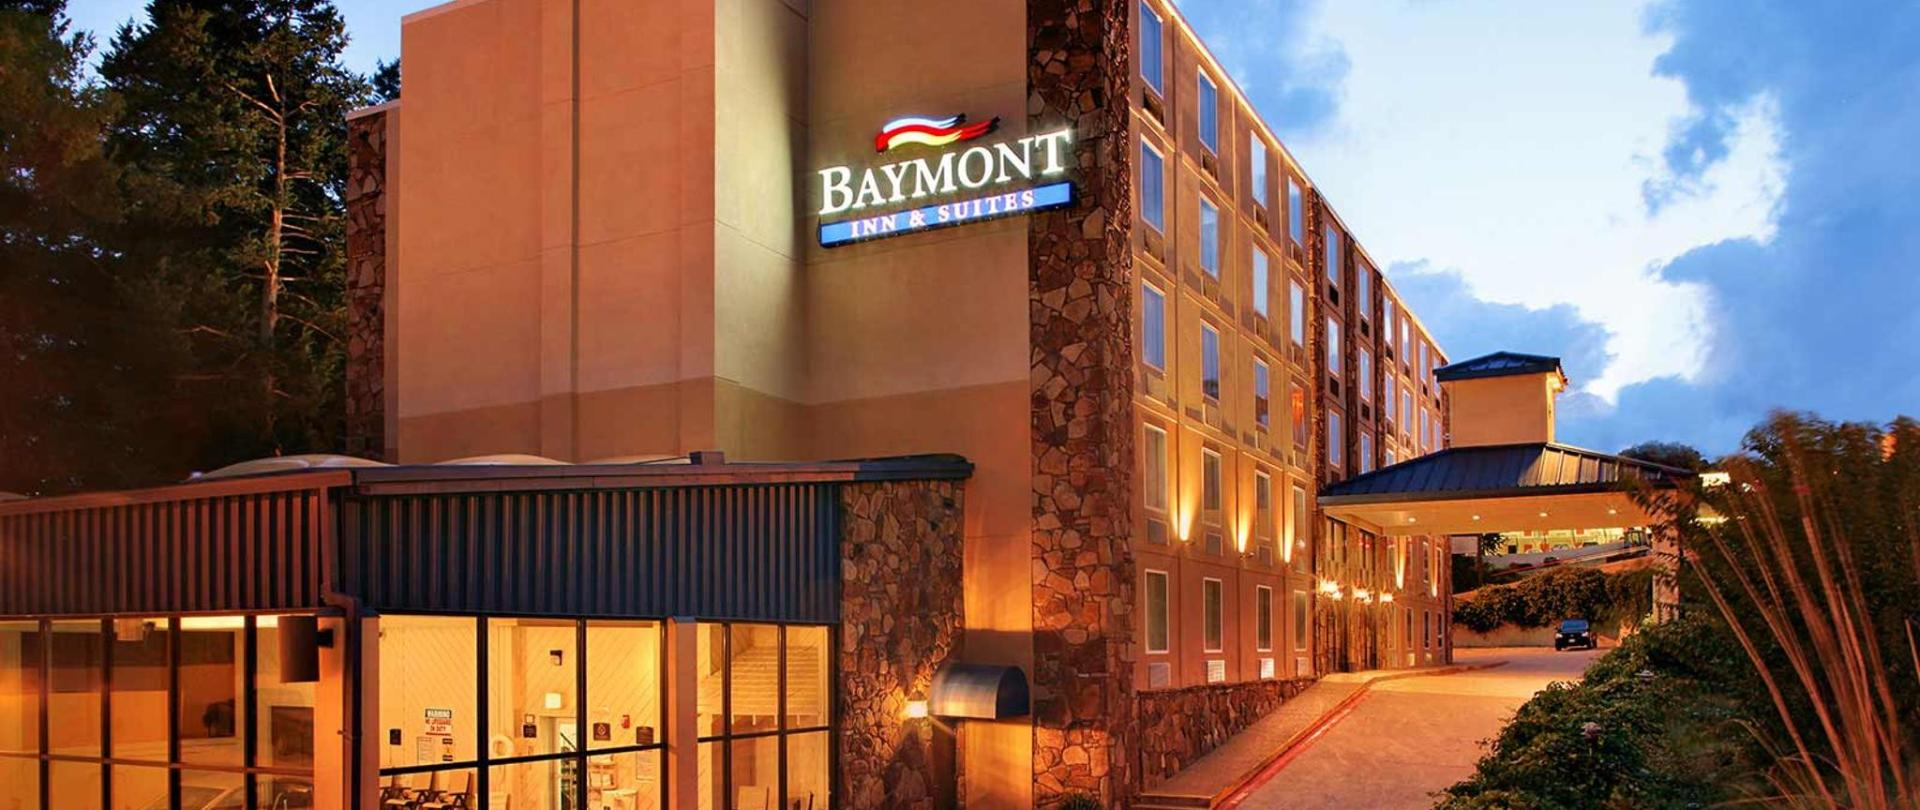 baymont-inn-and-suites-branson-missouri-home1-top.jpg